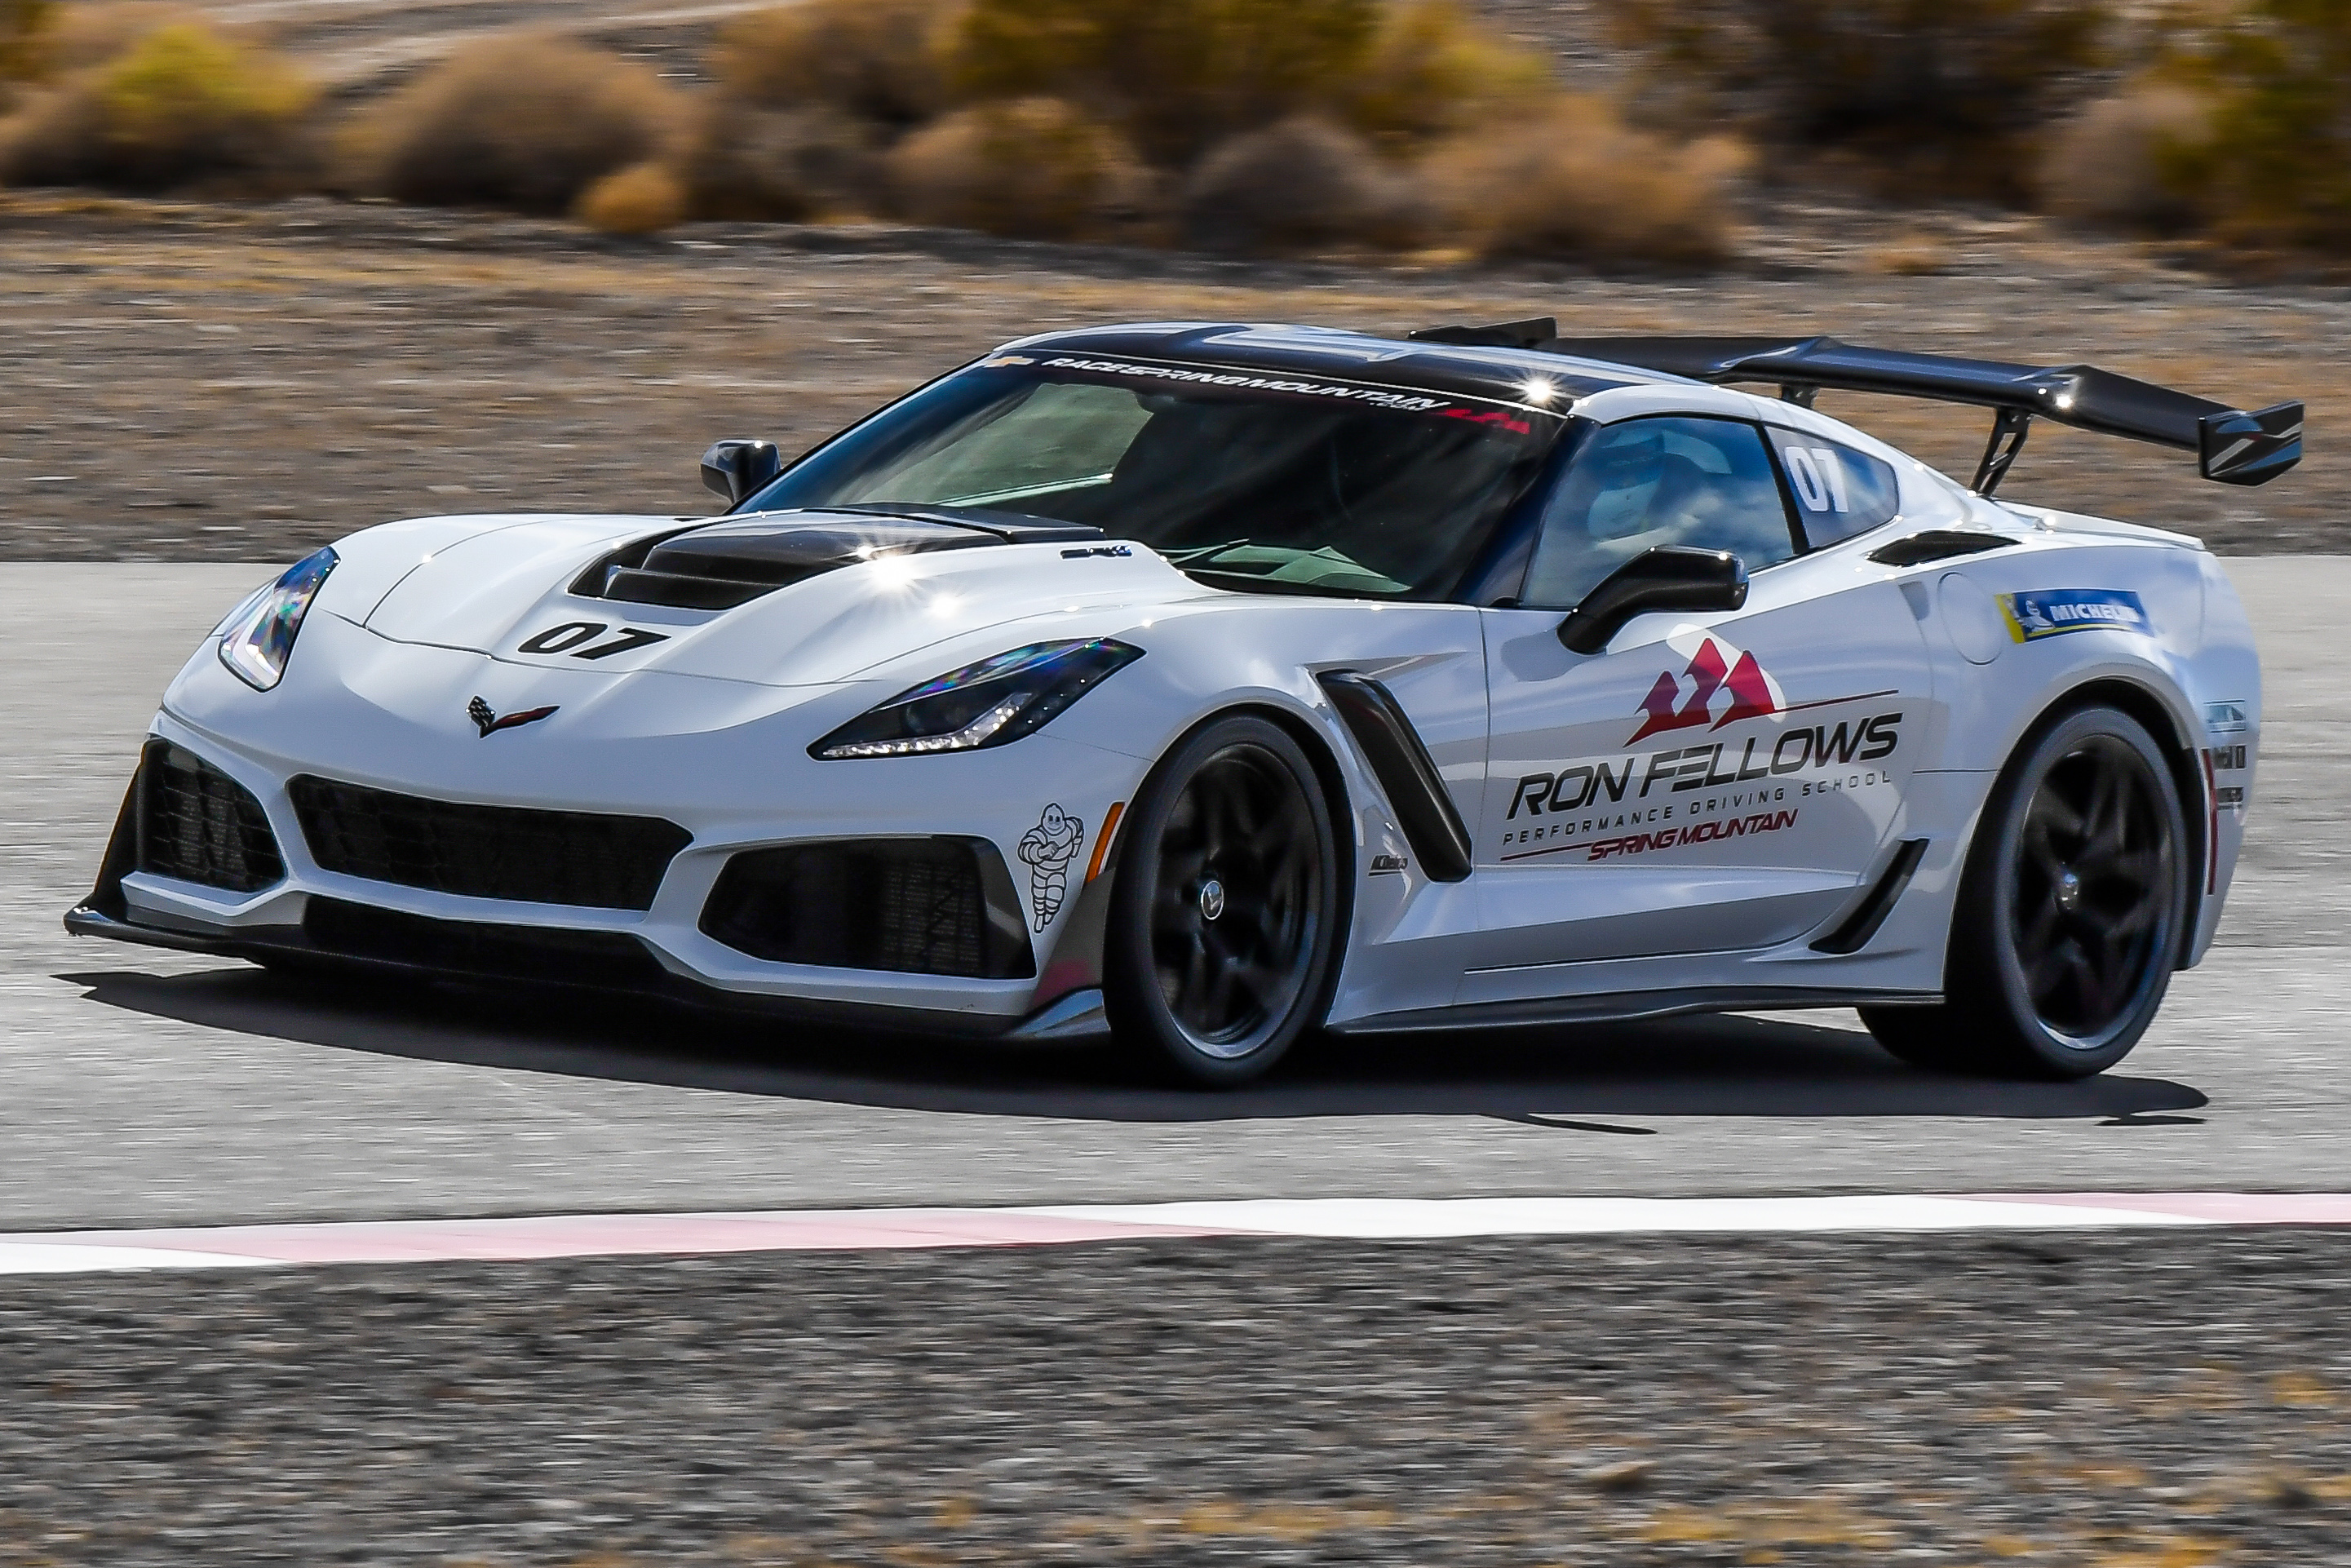 The 2018 Zr1 Is The Best Corvette Ever Gearjunkie